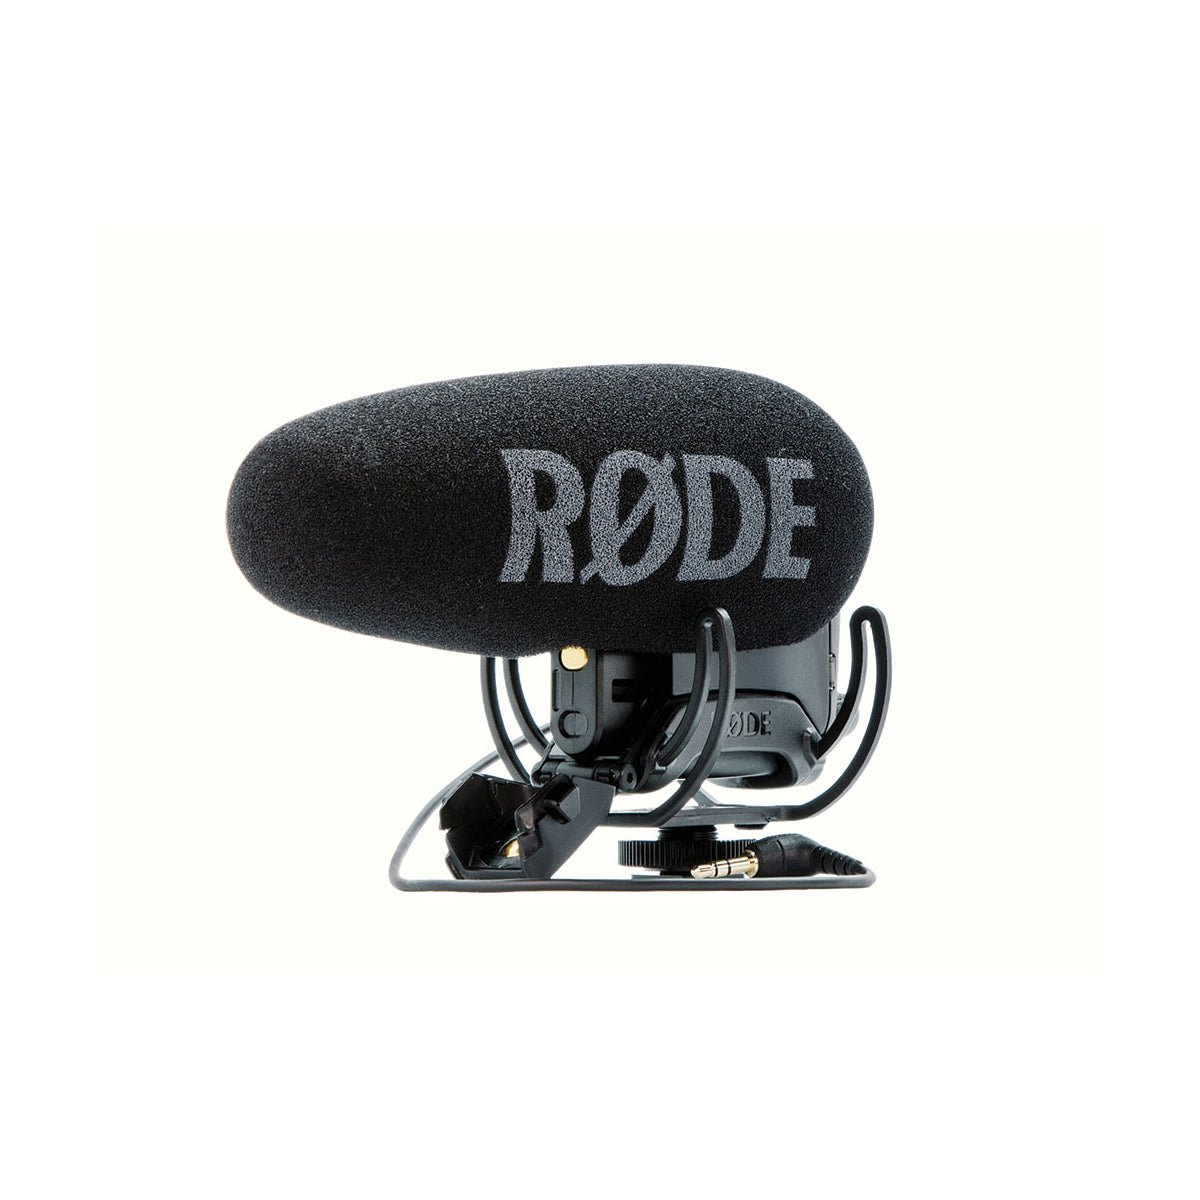 Rode VideoMic Pro+ Front